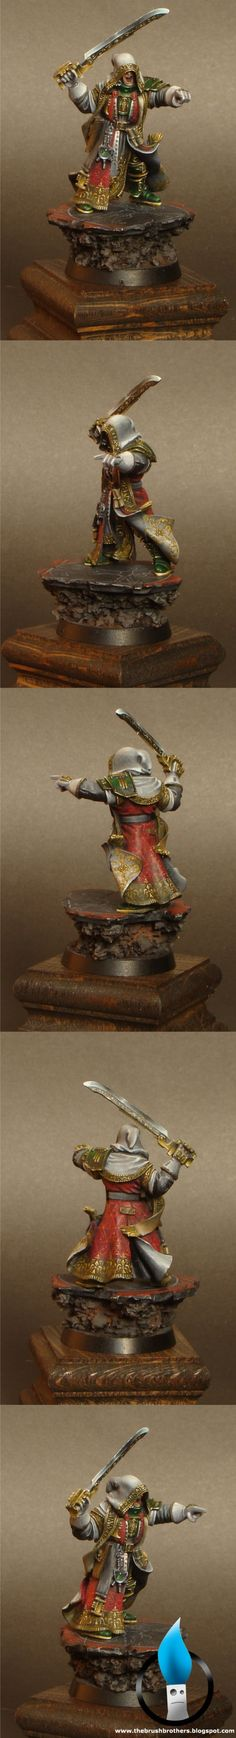 Inquisitor Lok.  I don't like that he looks like he's smiling, but an excellent paintjob.